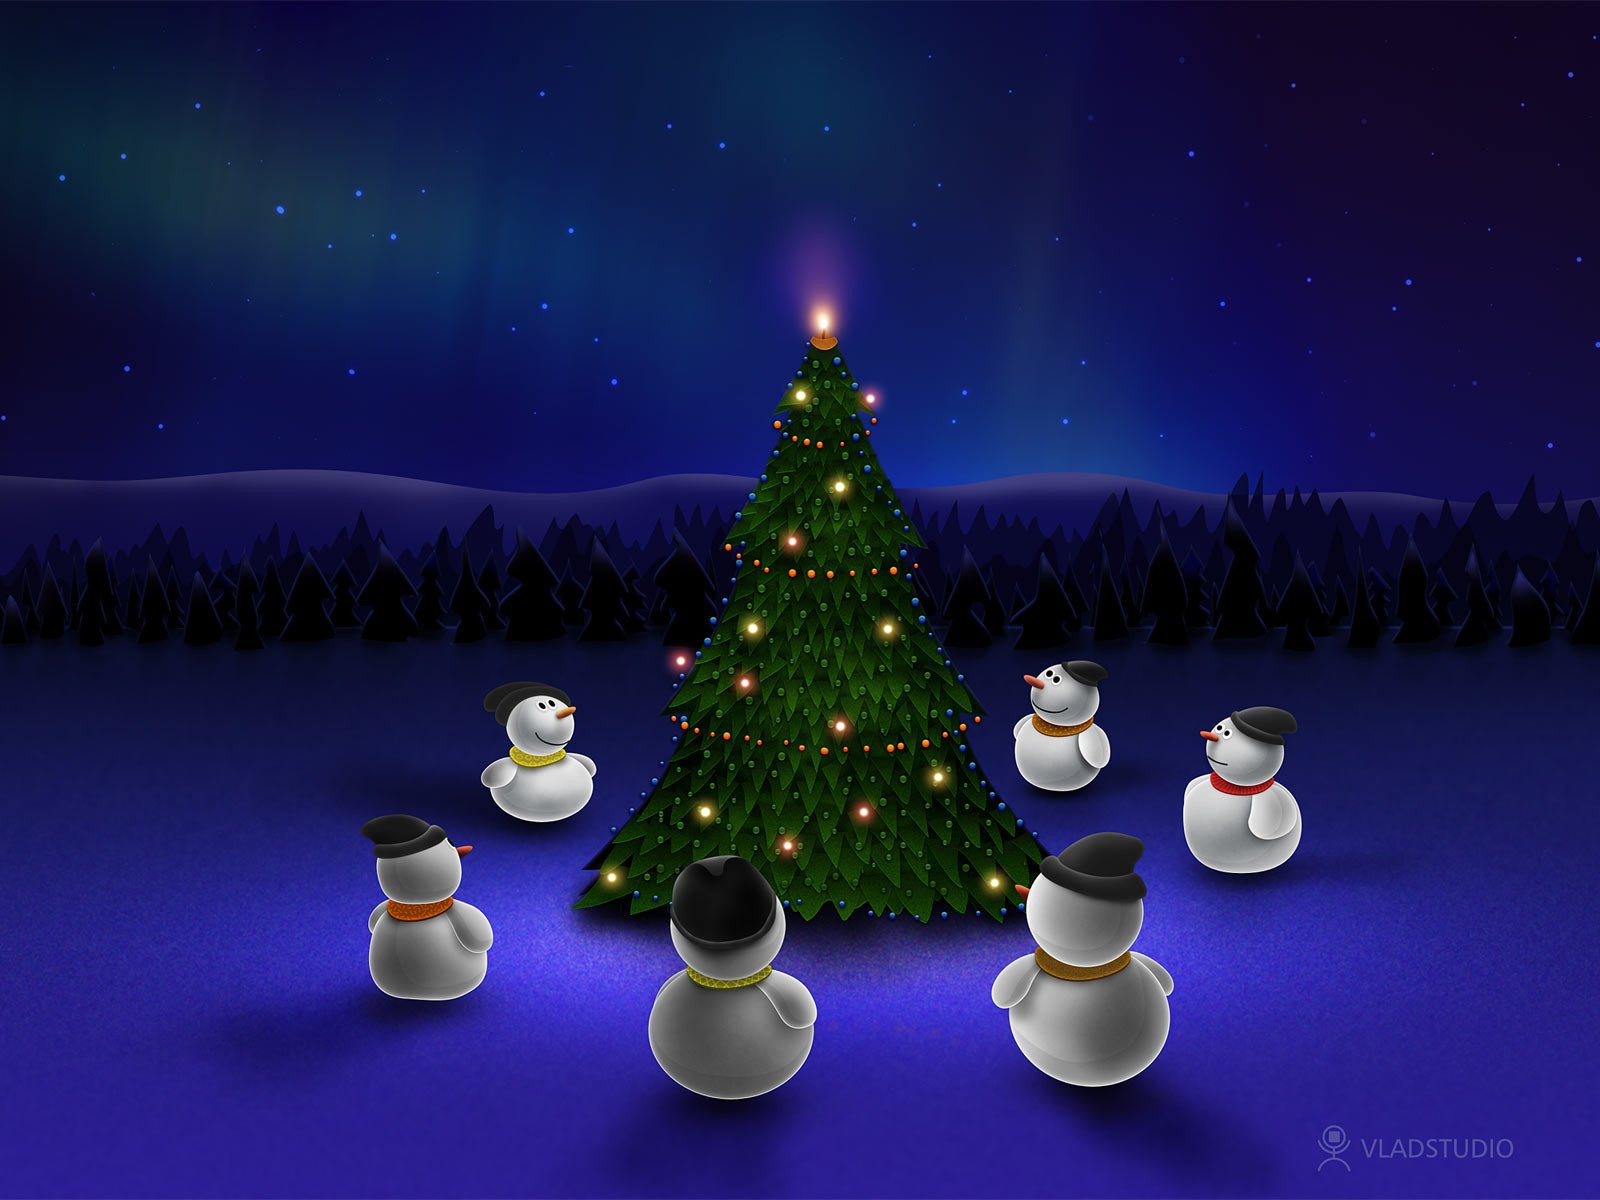 Free Christmas Desktop Wallpaper Christmas Wallpaper